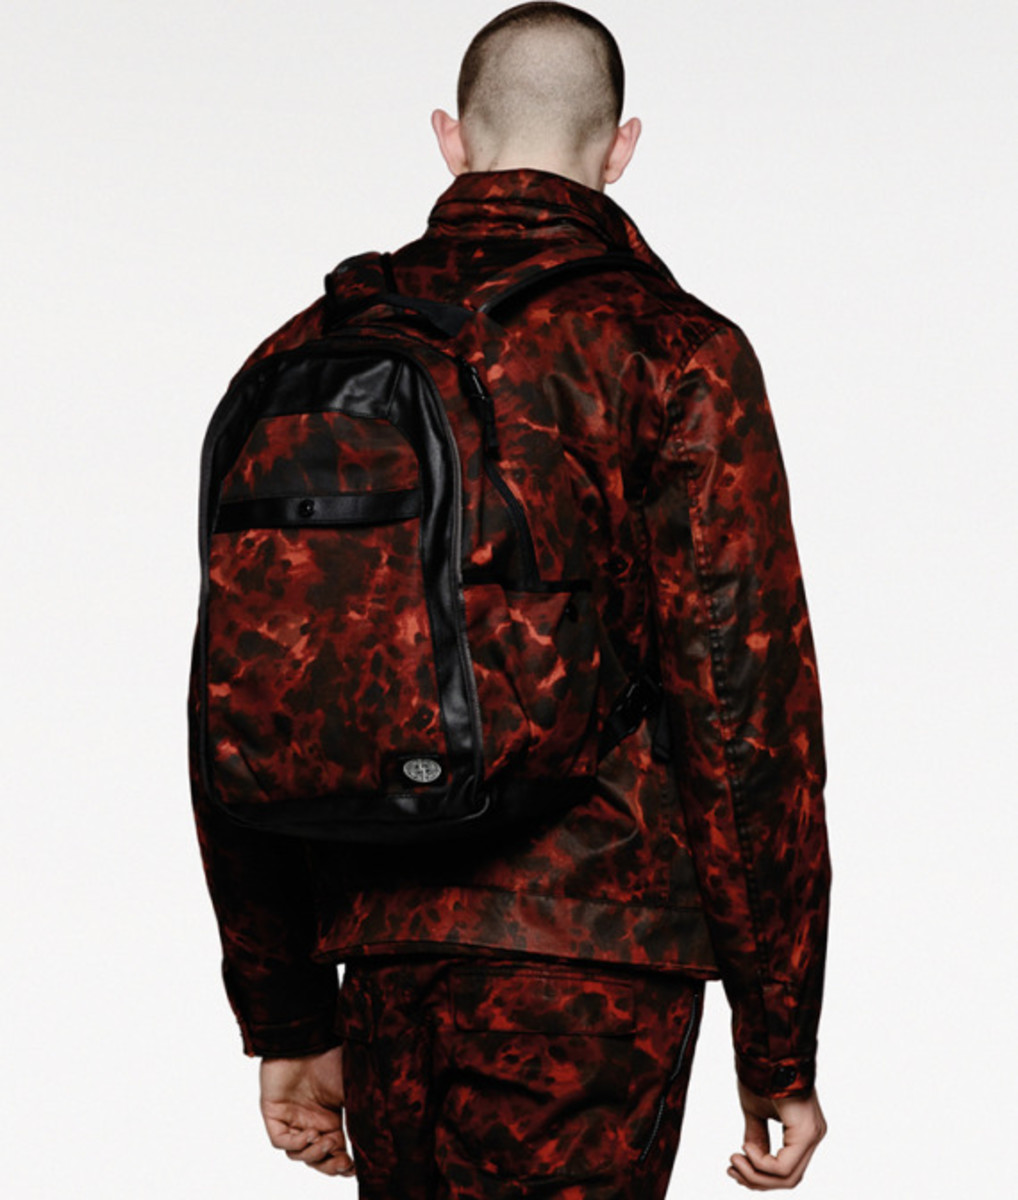 stone-island-fall-winter-2014-tortoise-camouflage-collection-04